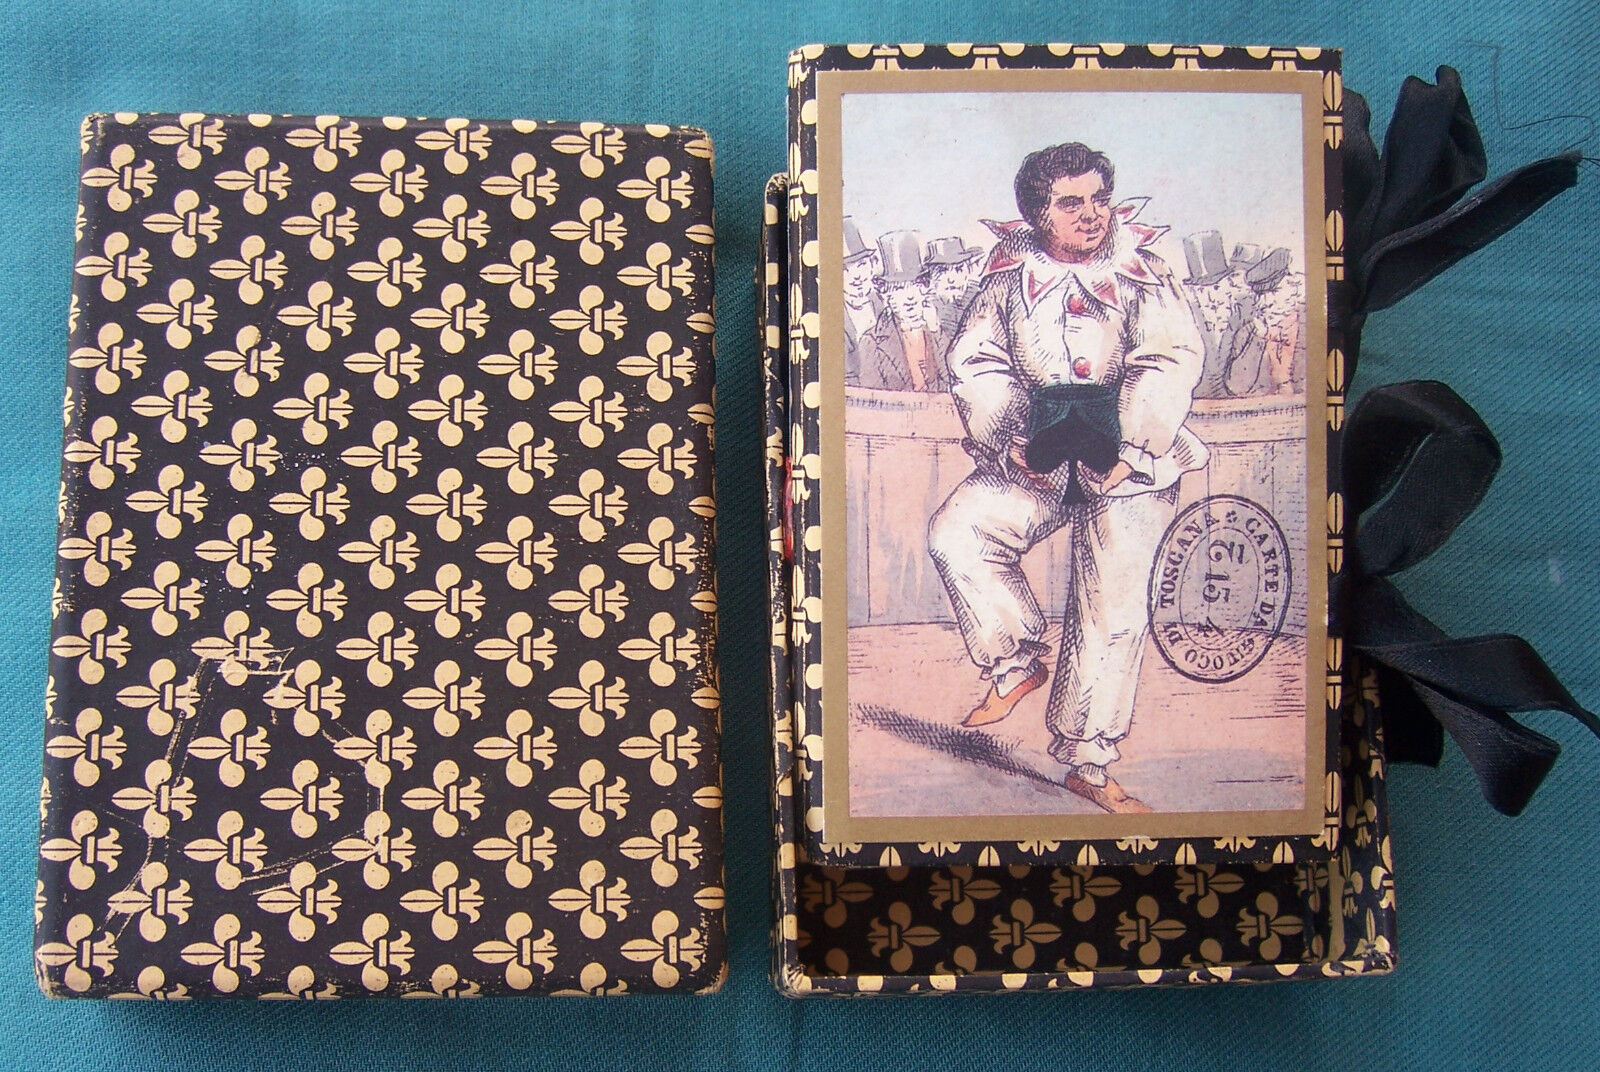 1996-IL MENEGHELLO-TRANSFORMATION PLAYING CARDS-TOSCANE-NUMERATO 21 DI 350-REPRO